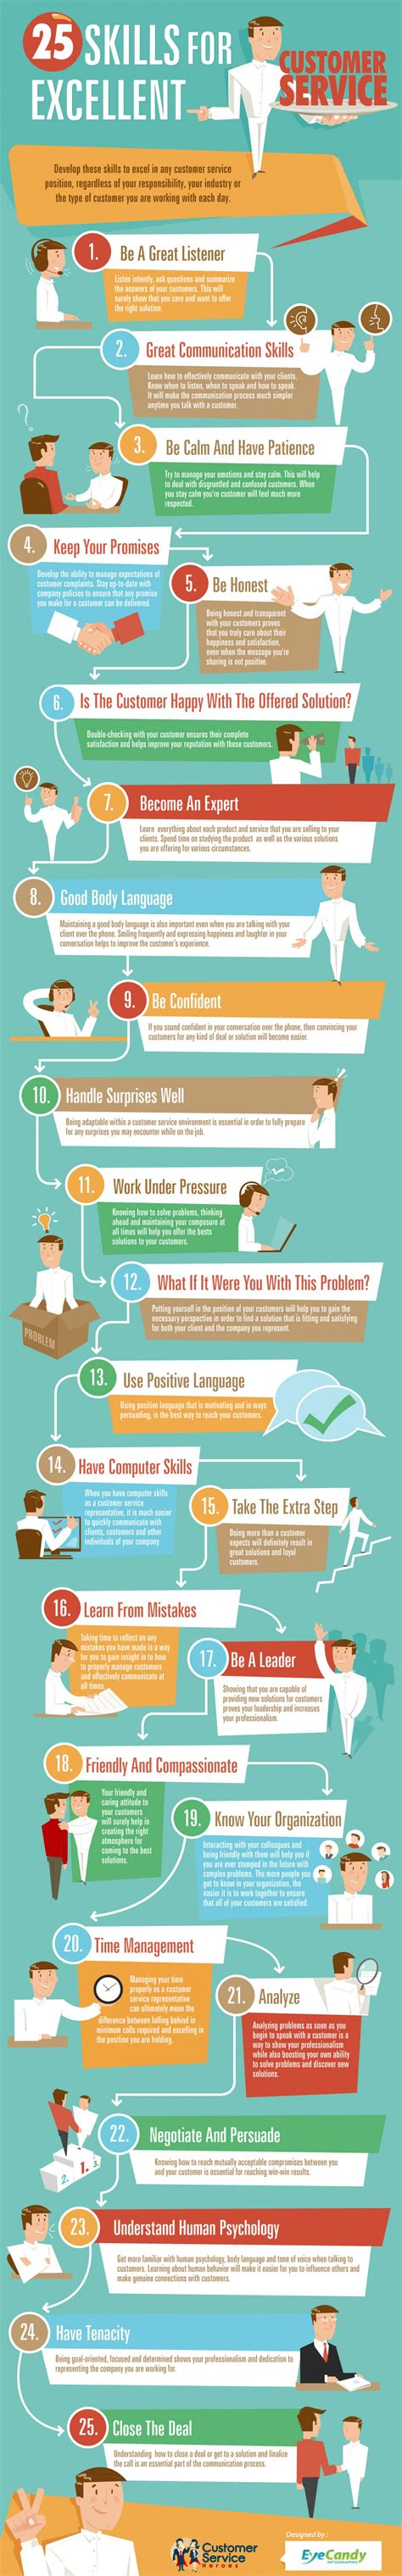 25 must skills to provide excellent customer service